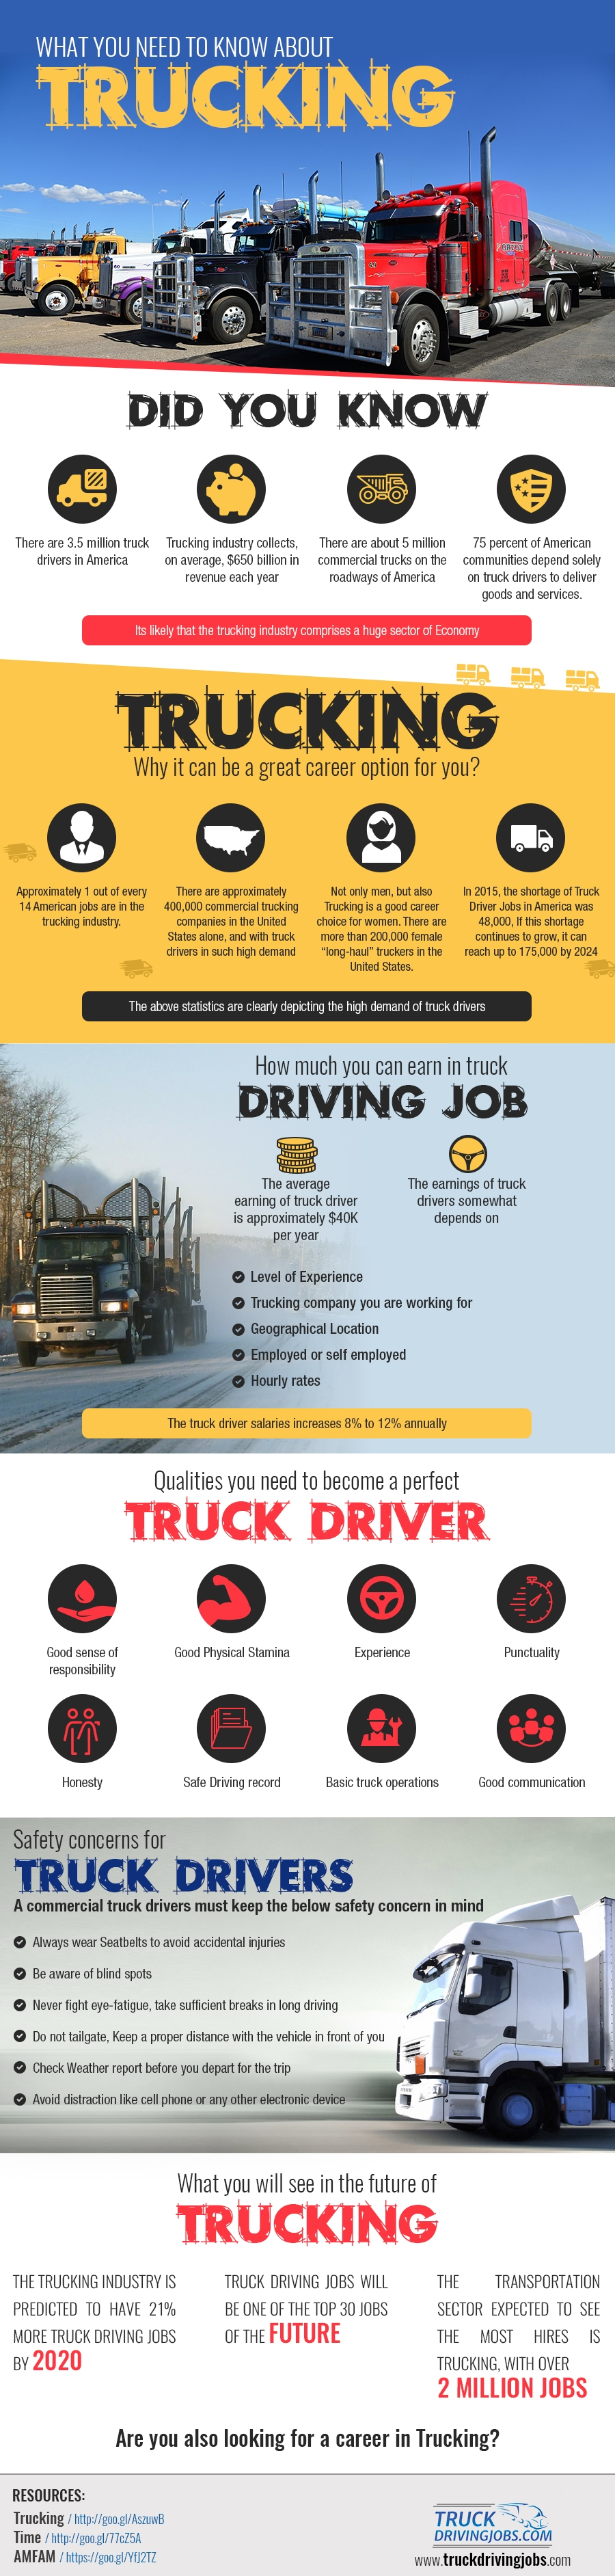 Infographic about Trucking